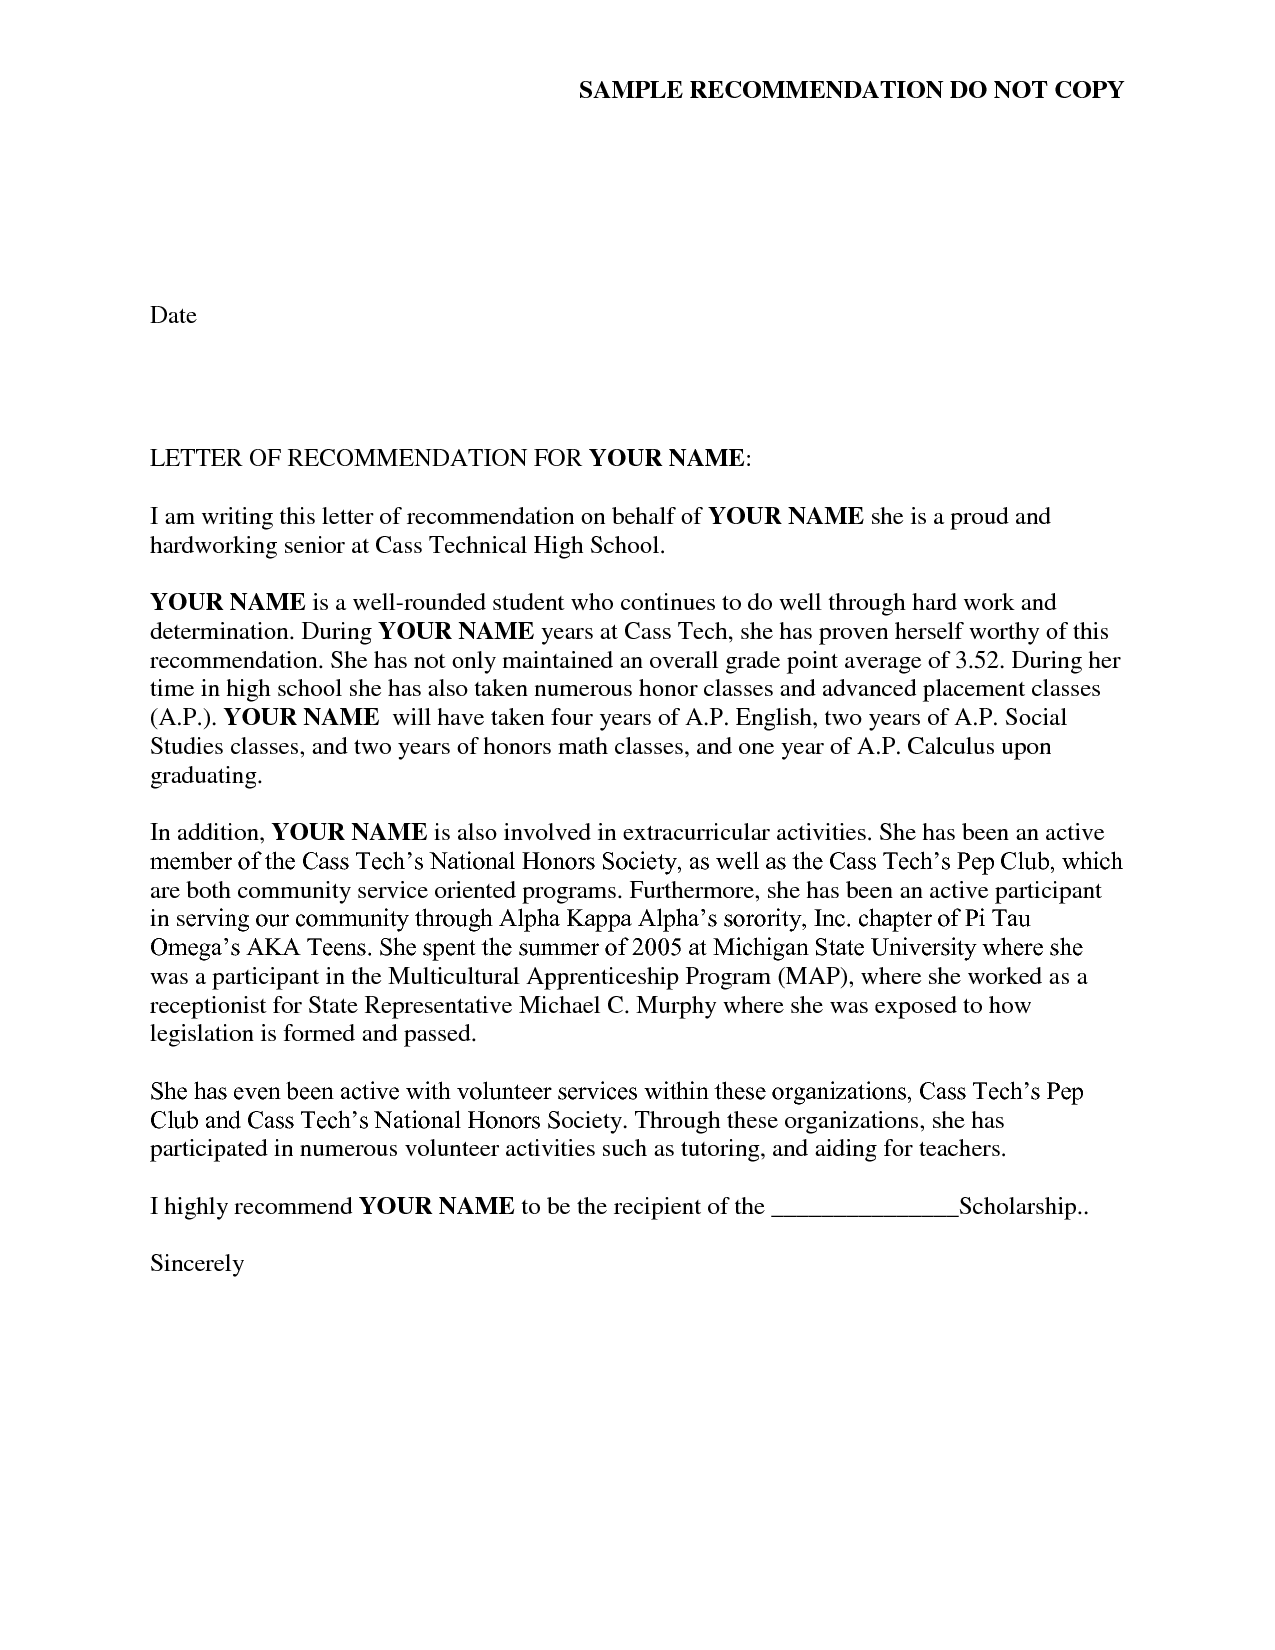 reference letter of recommendation sample sample alpha kappa reference letter of recommendation sample sample alpha kappa alpha recommendation letter